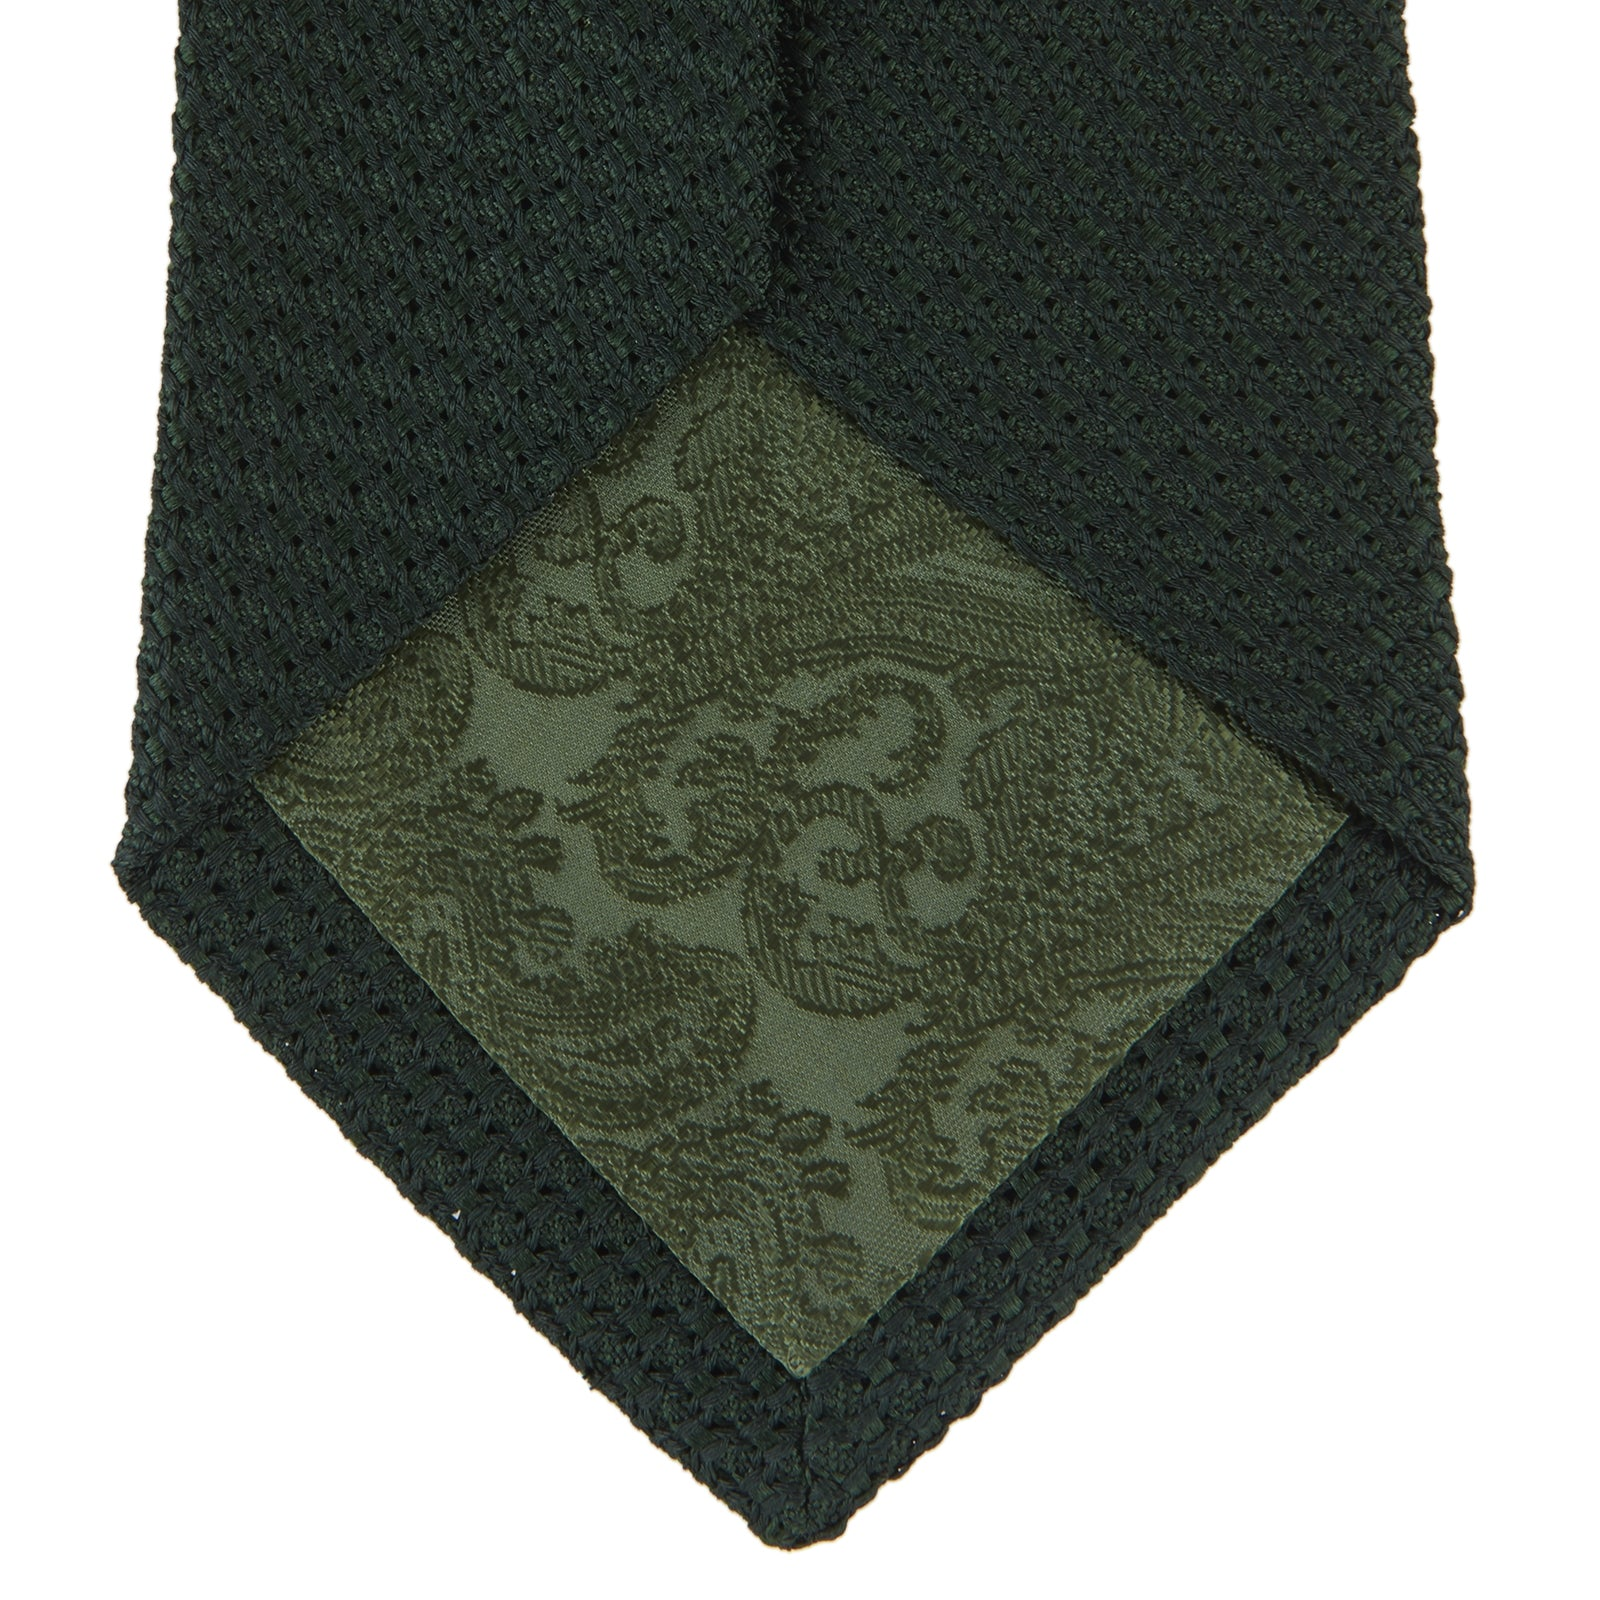 Seven-Fold Dark Green Grenadine Silk Tie